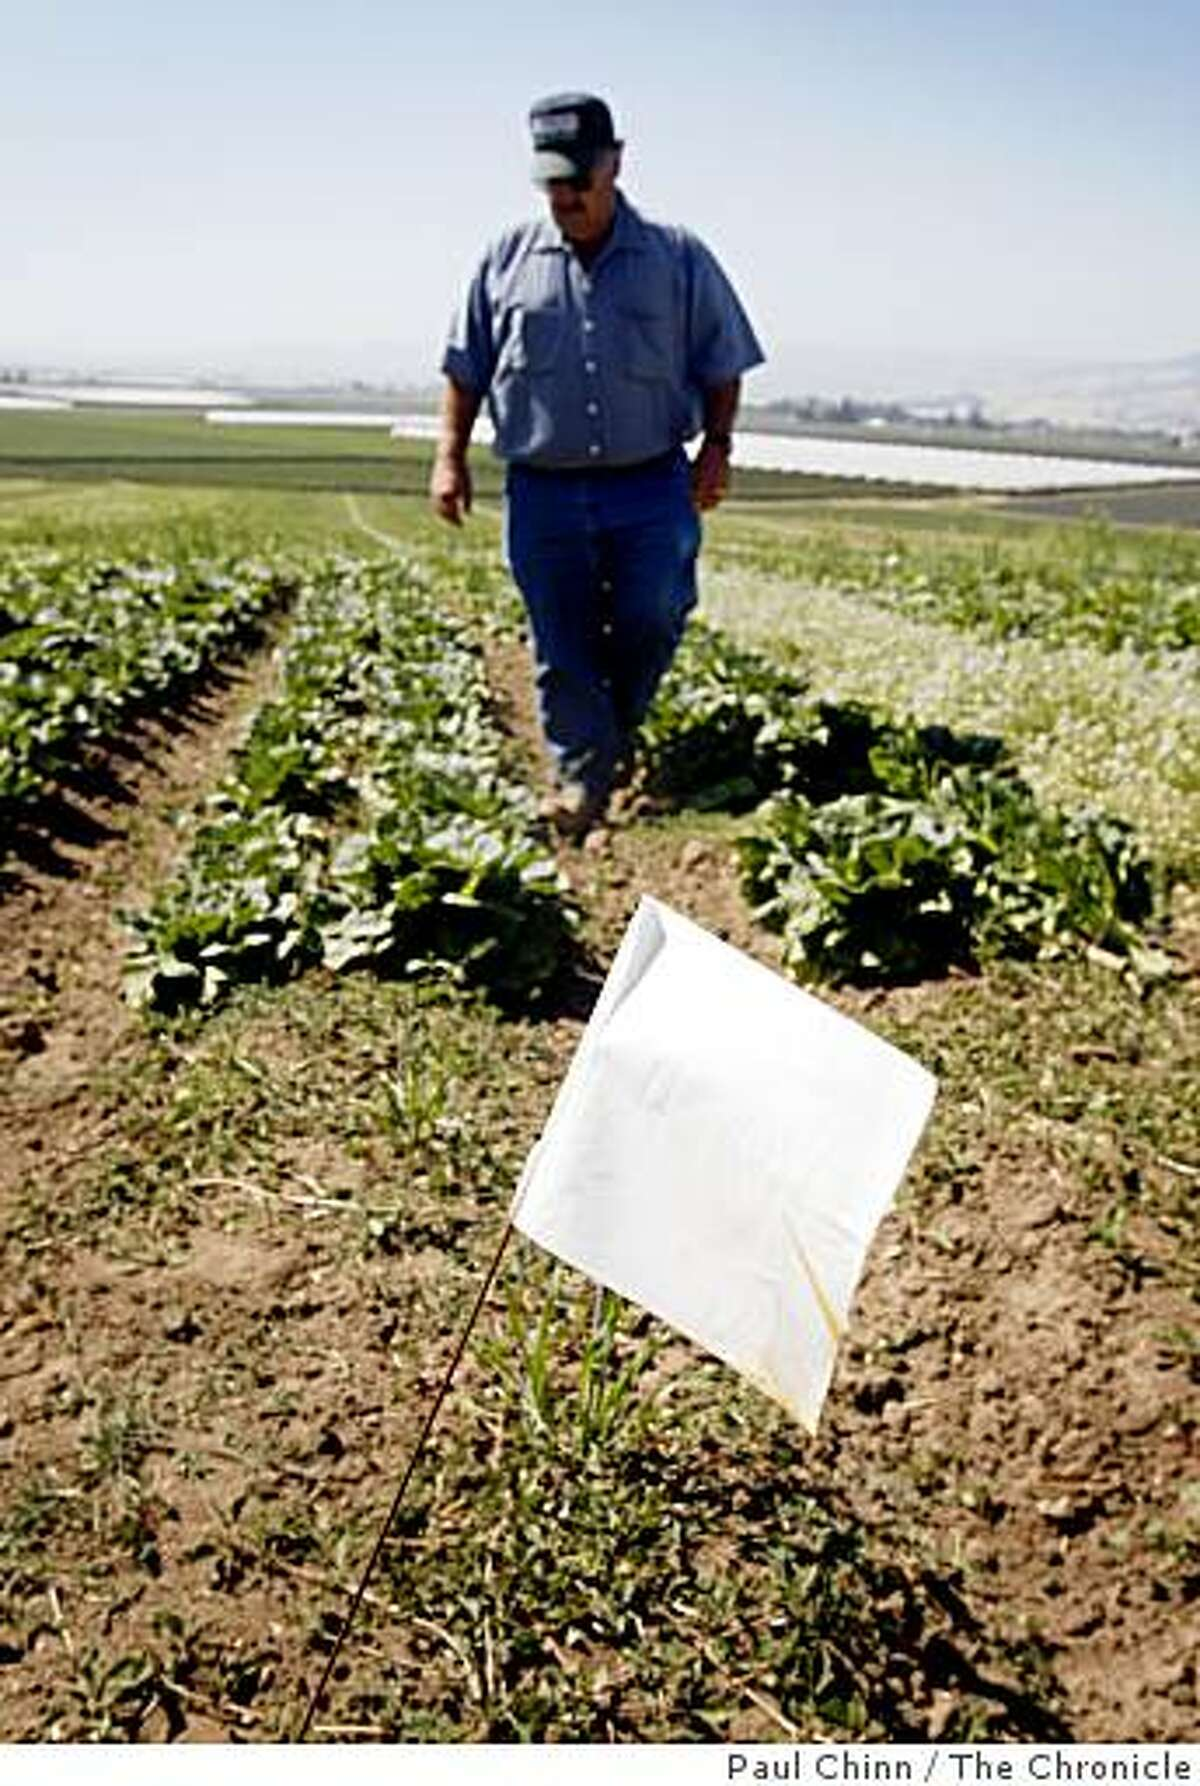 Organic farmer Dick Peixoto walks through an unharvested section of a lettuce field at Lakeside Organic Gardens Farm in Aromas, Calif., on Thursday, July 2, 2009. White flags mark the areas that can't be harvested as a precaution to prevent e. coli contamination after a deer was spotted wandering through the field a few weeks ago.